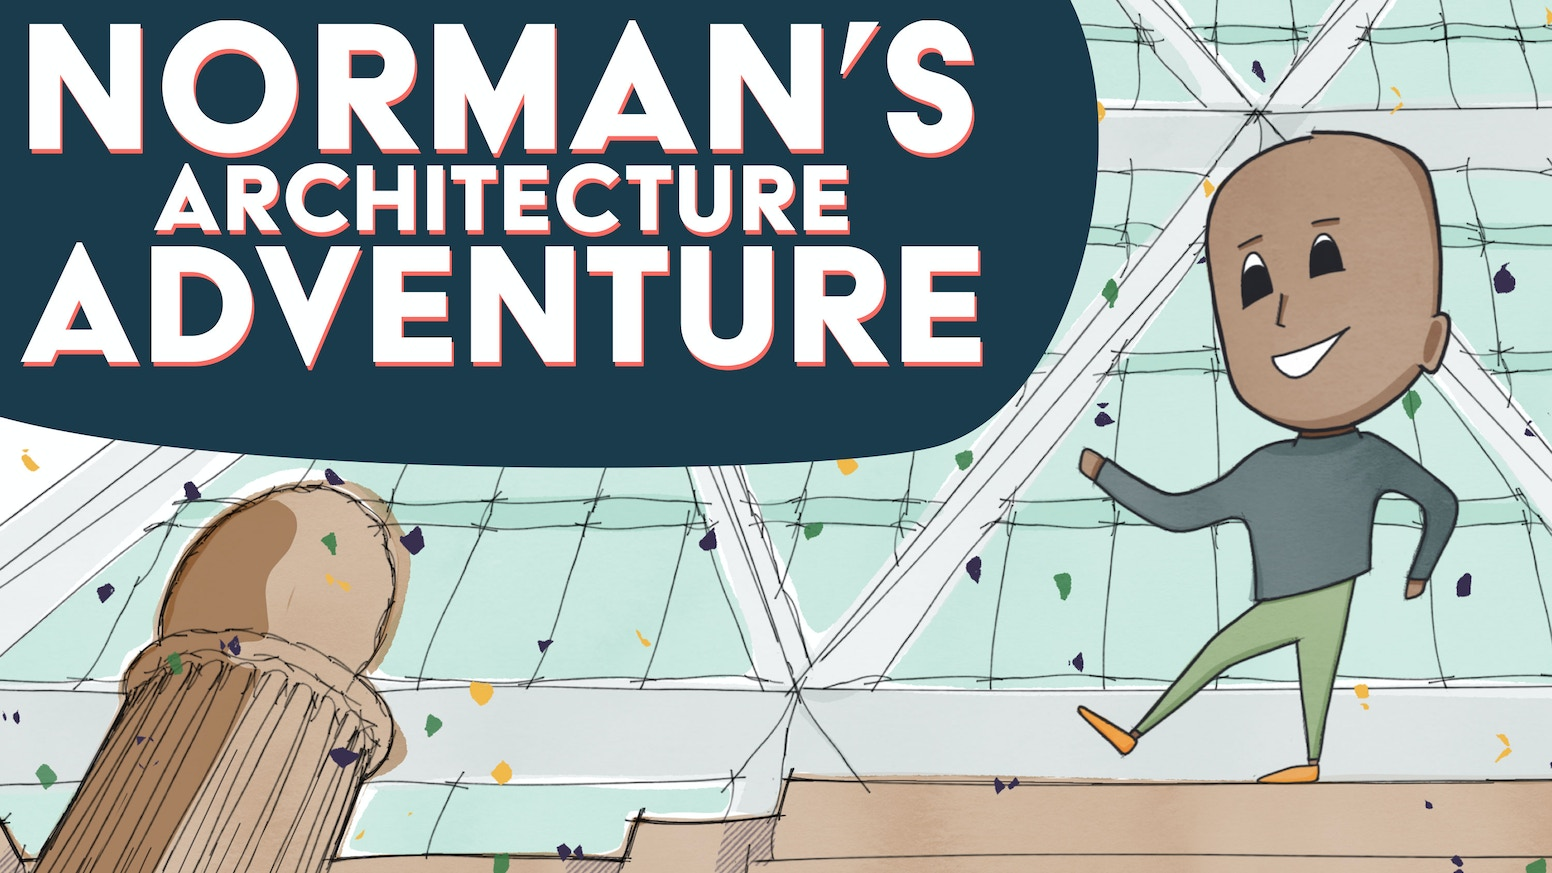 A children's book with diverse characters that helps kids explore their imagination, sense of adventure, and bravery. Now available on GoArchitect.co